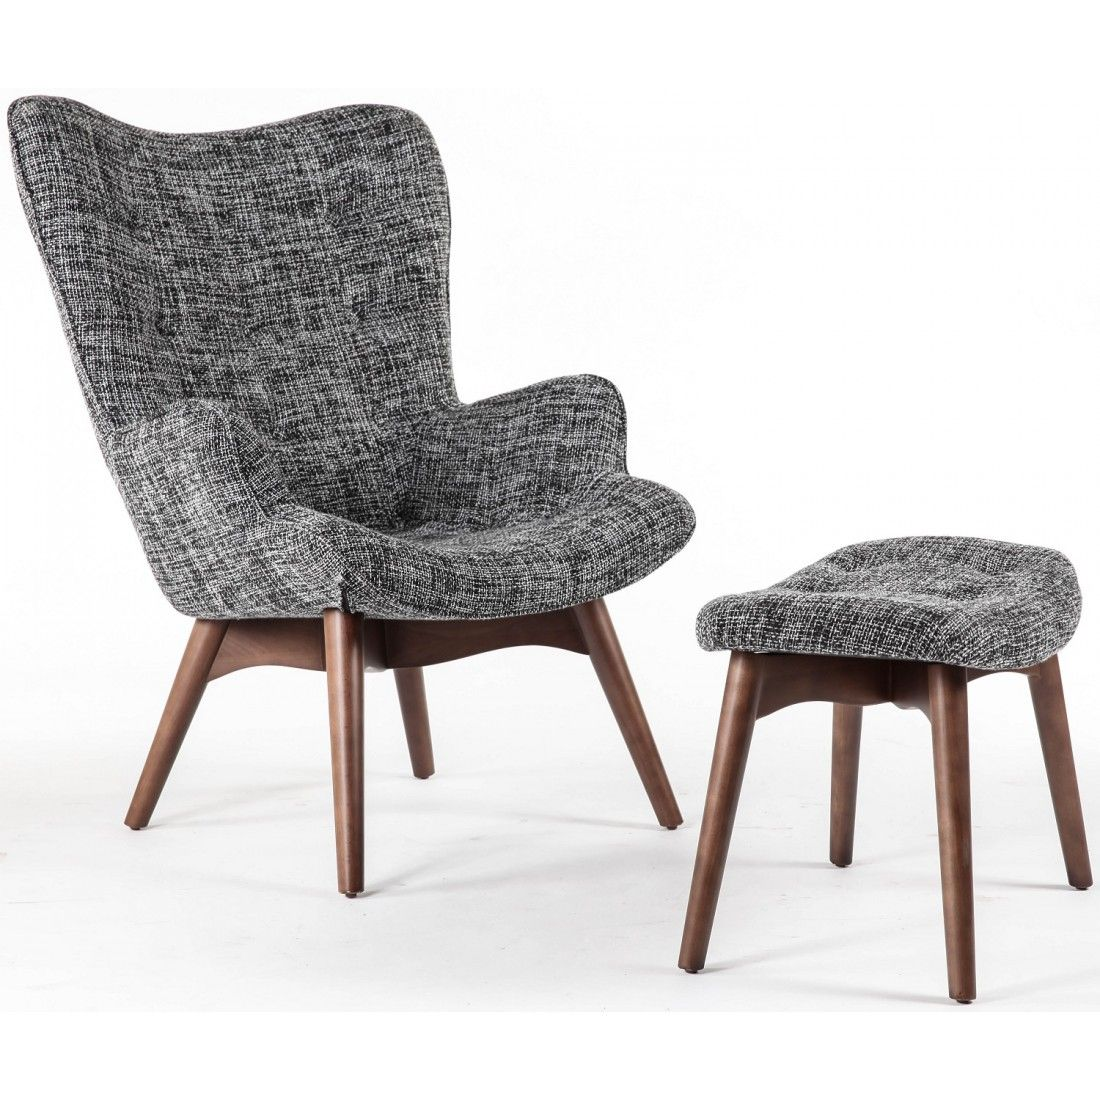 Grey grant featherston contour chair and ottoman france and son mid